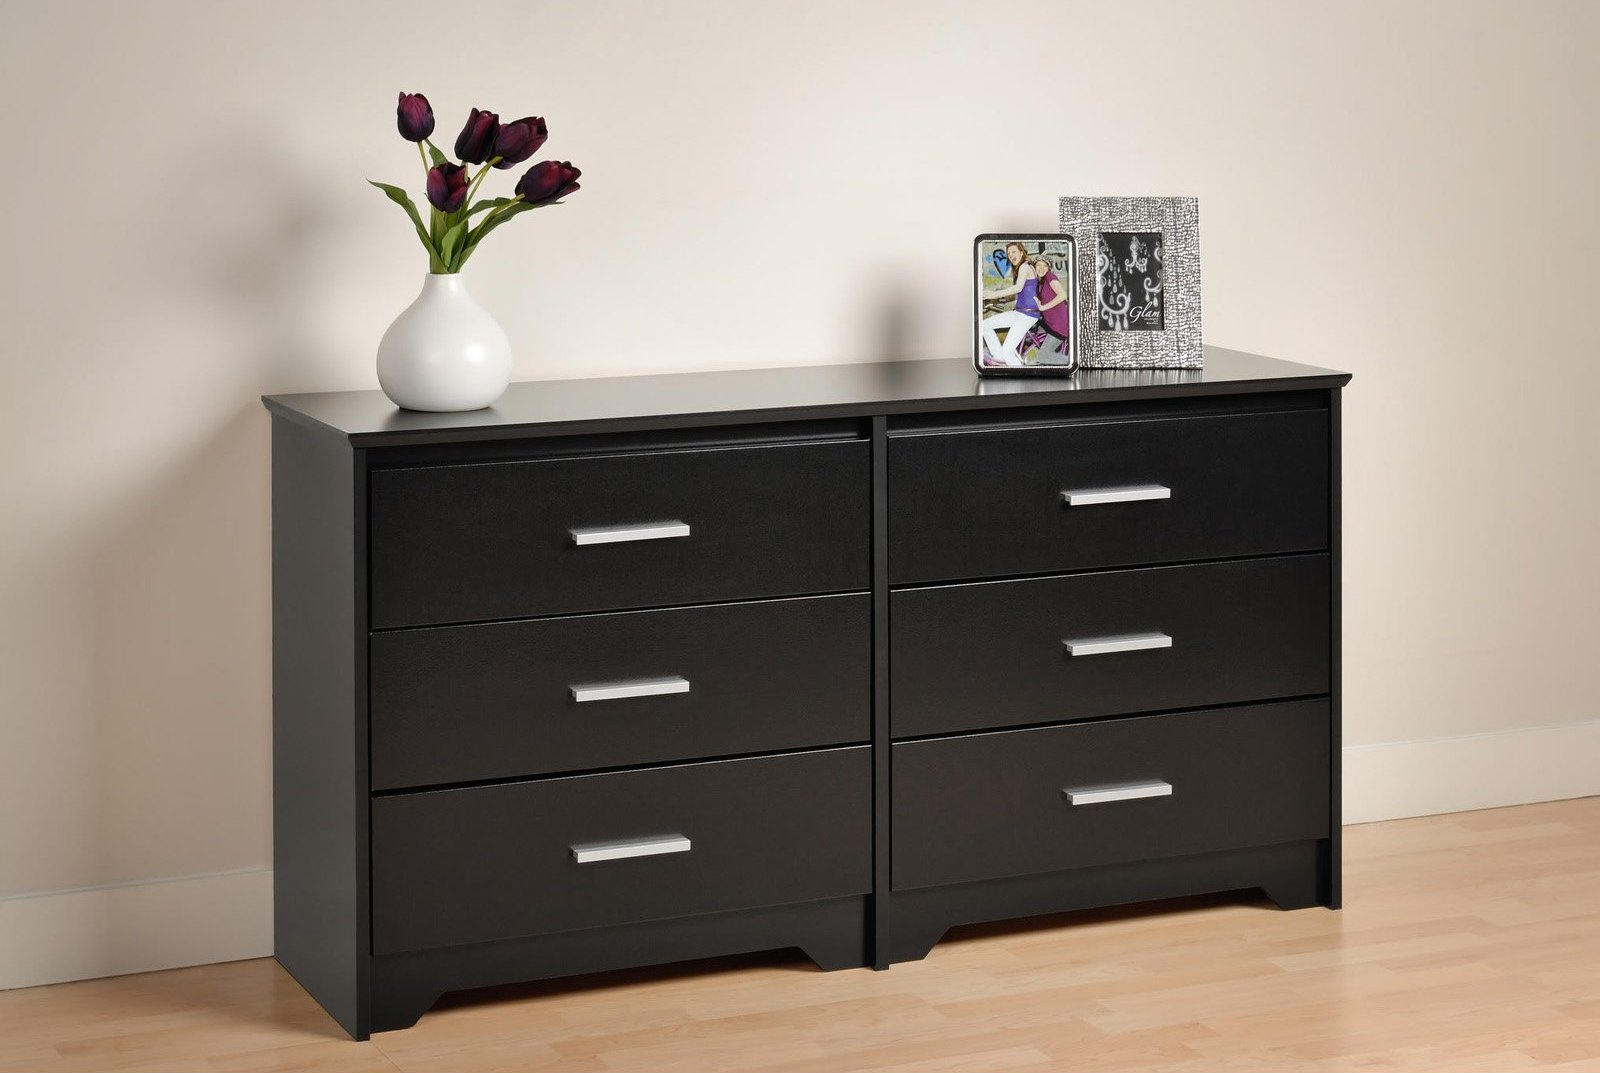 Image of: IKEA Malm 6 Drawer Dresser